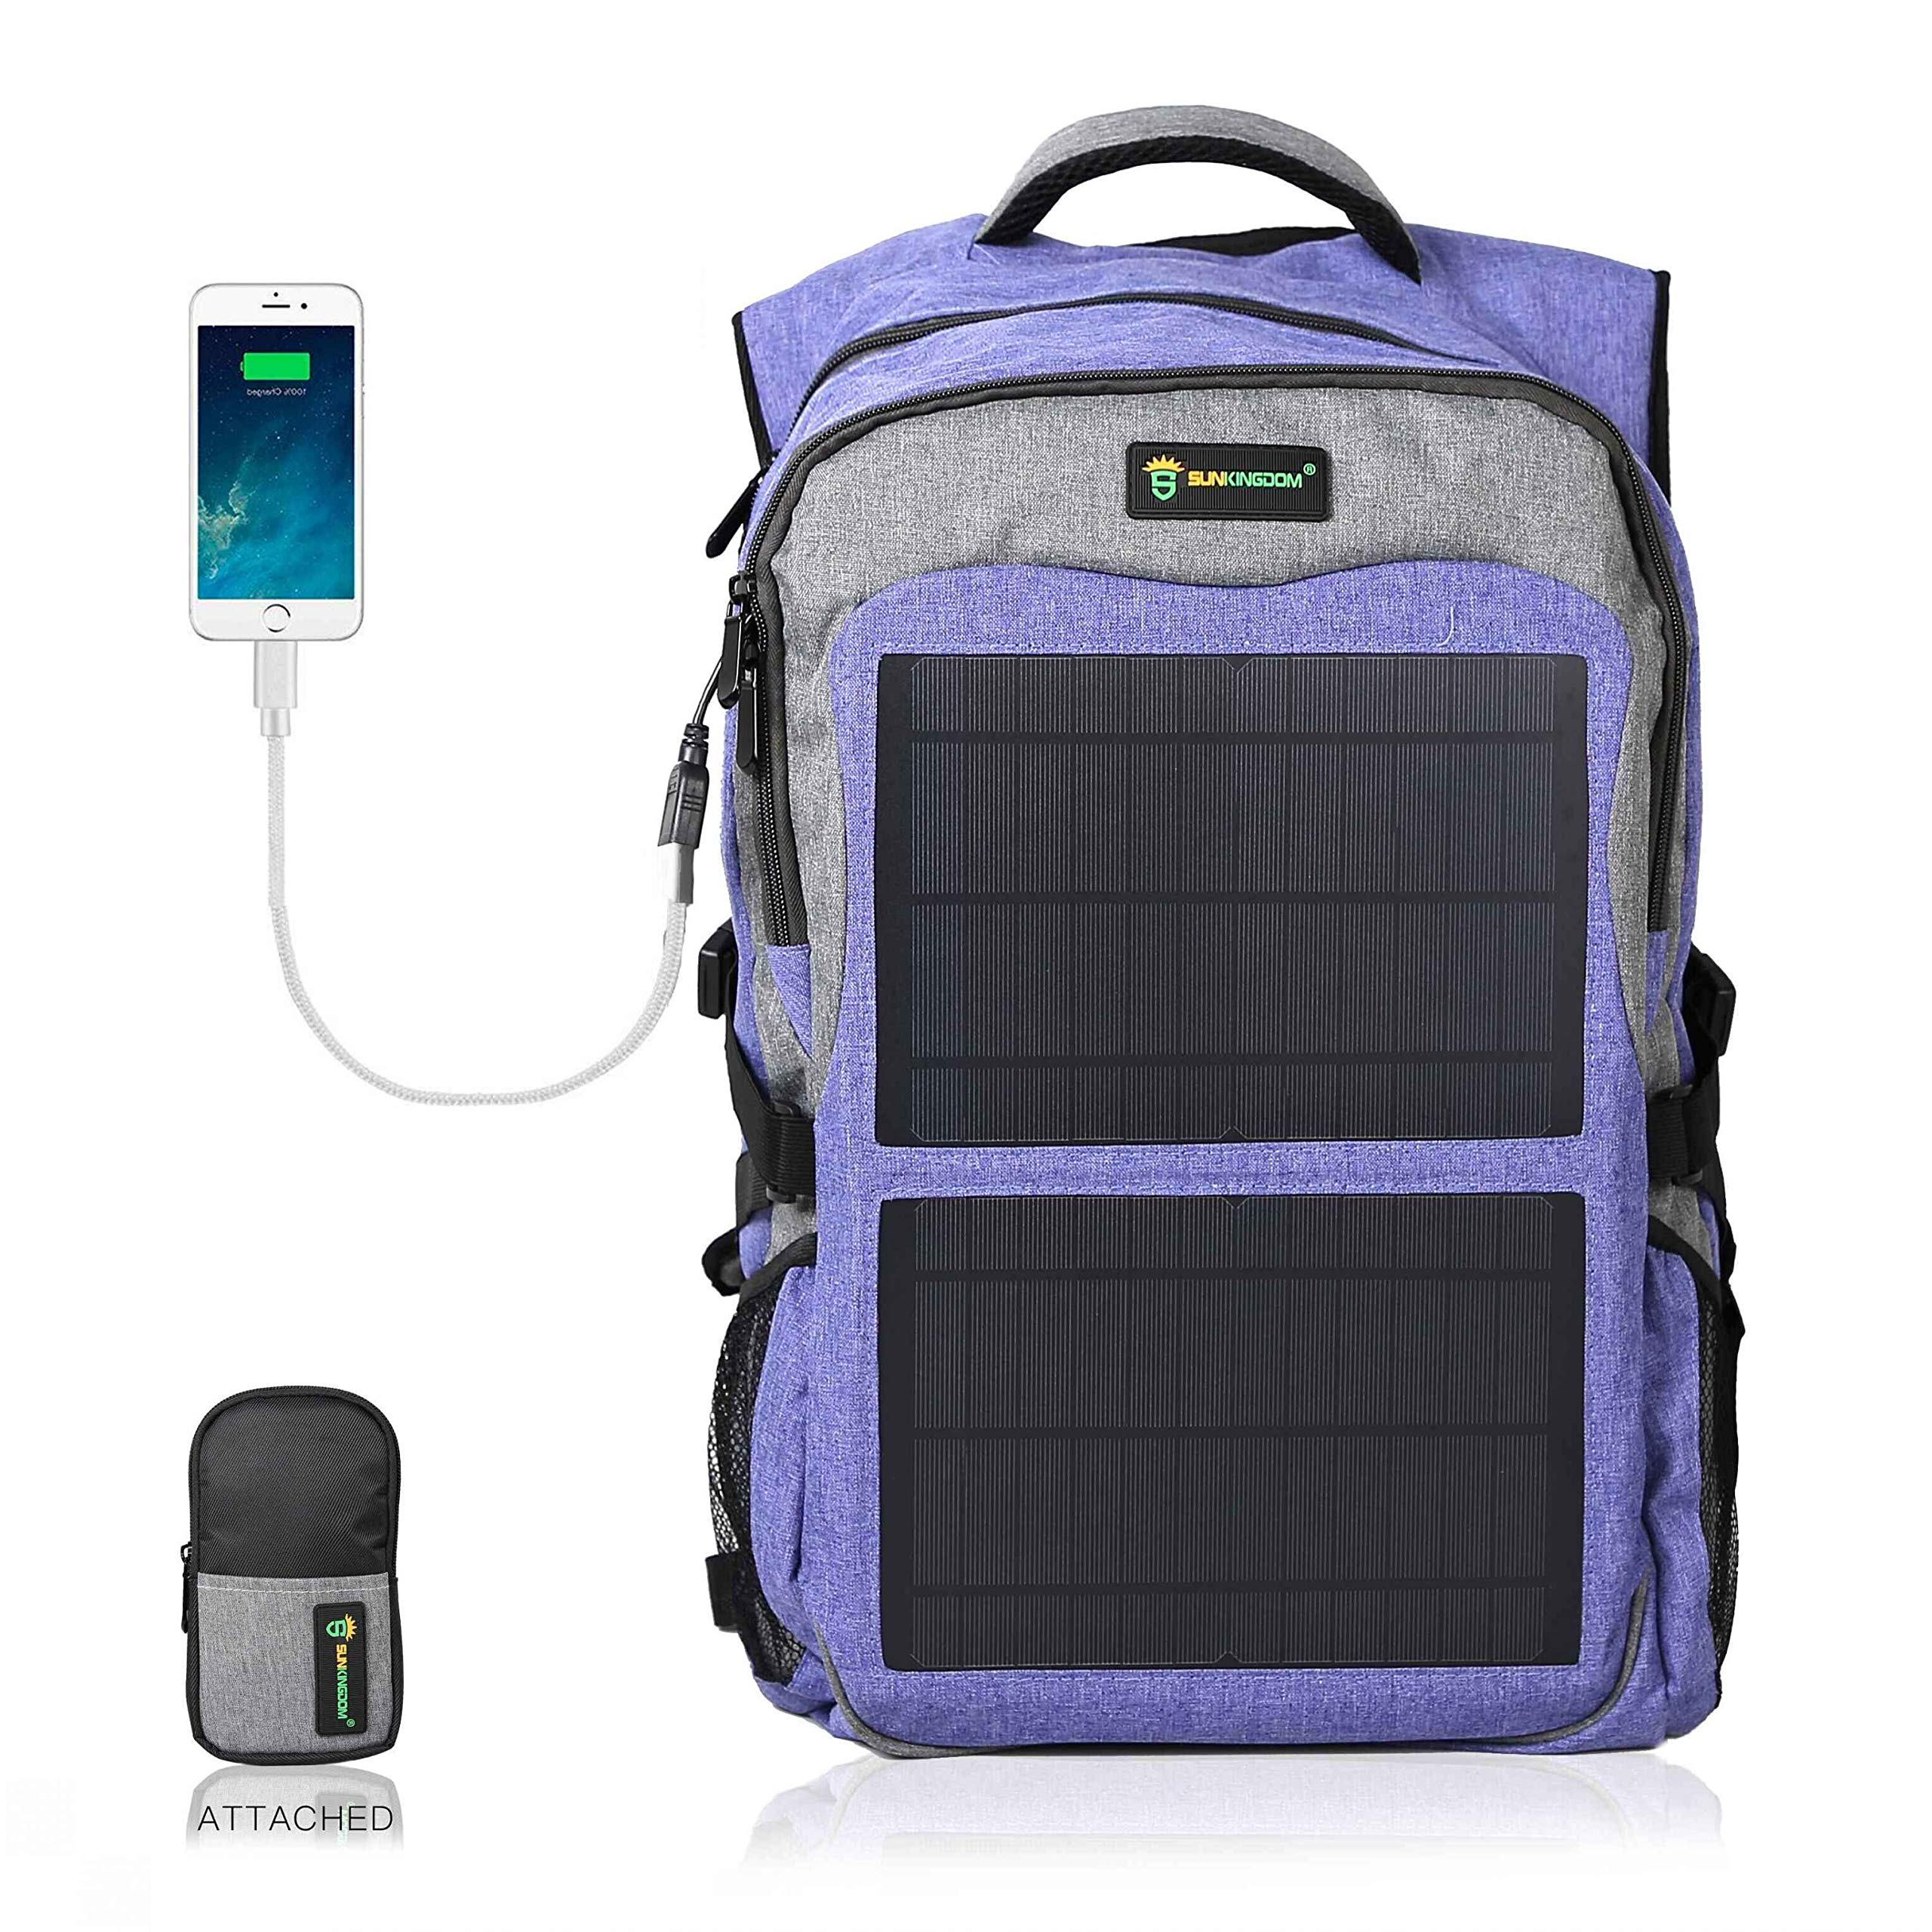 SUNKINGDOM portable hiking Powered Waterproof Anti-theft Durable Laptop solar Backpack,highest 12W(Watts) Solar Panel Charge with two USB voltage controller for Smart Cell Phones and Tablets by SUNKINGDOM